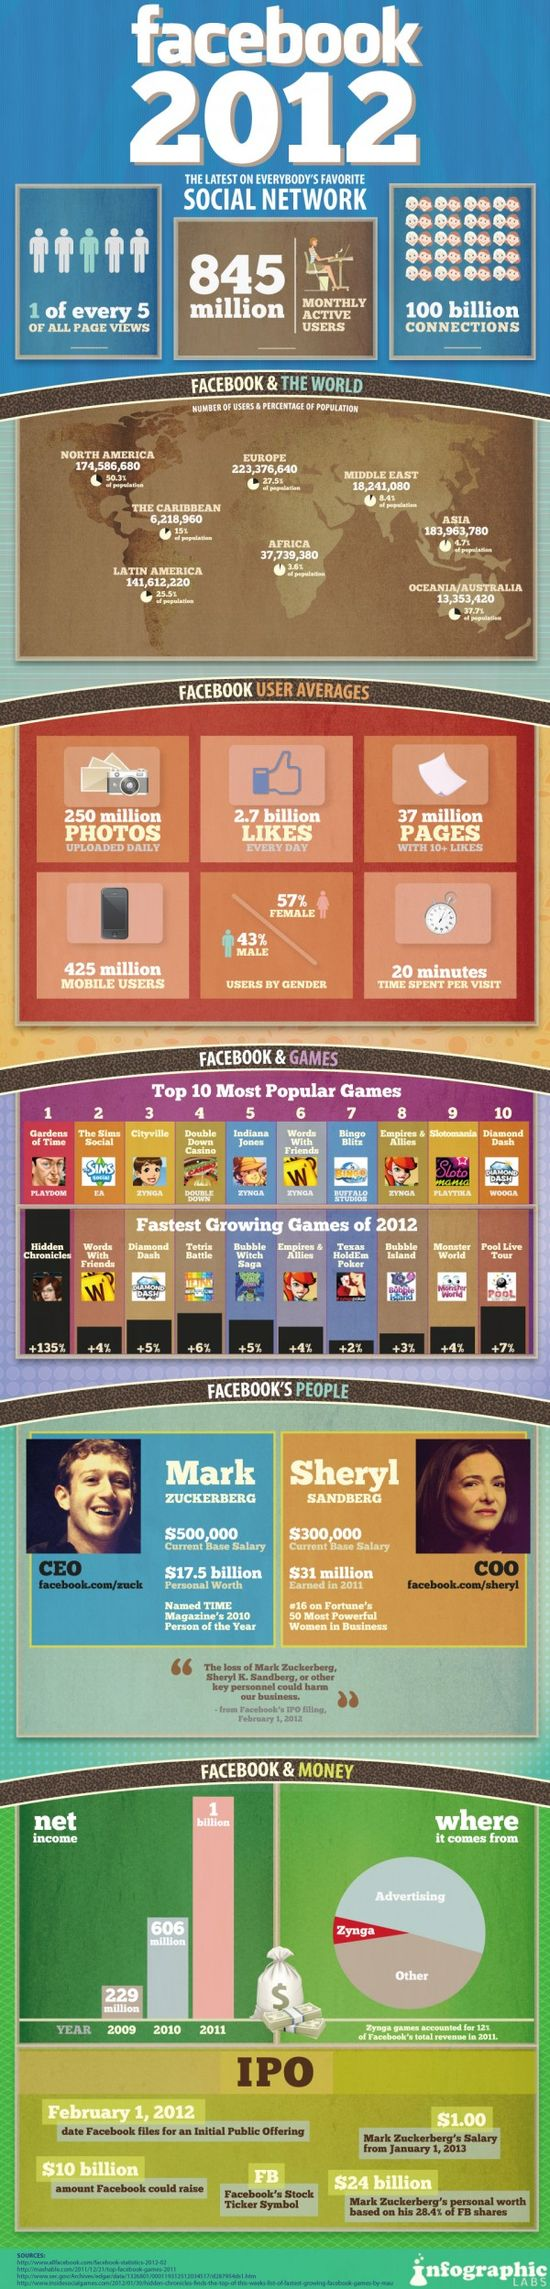 Stats on Facebook 2012  - Infographic